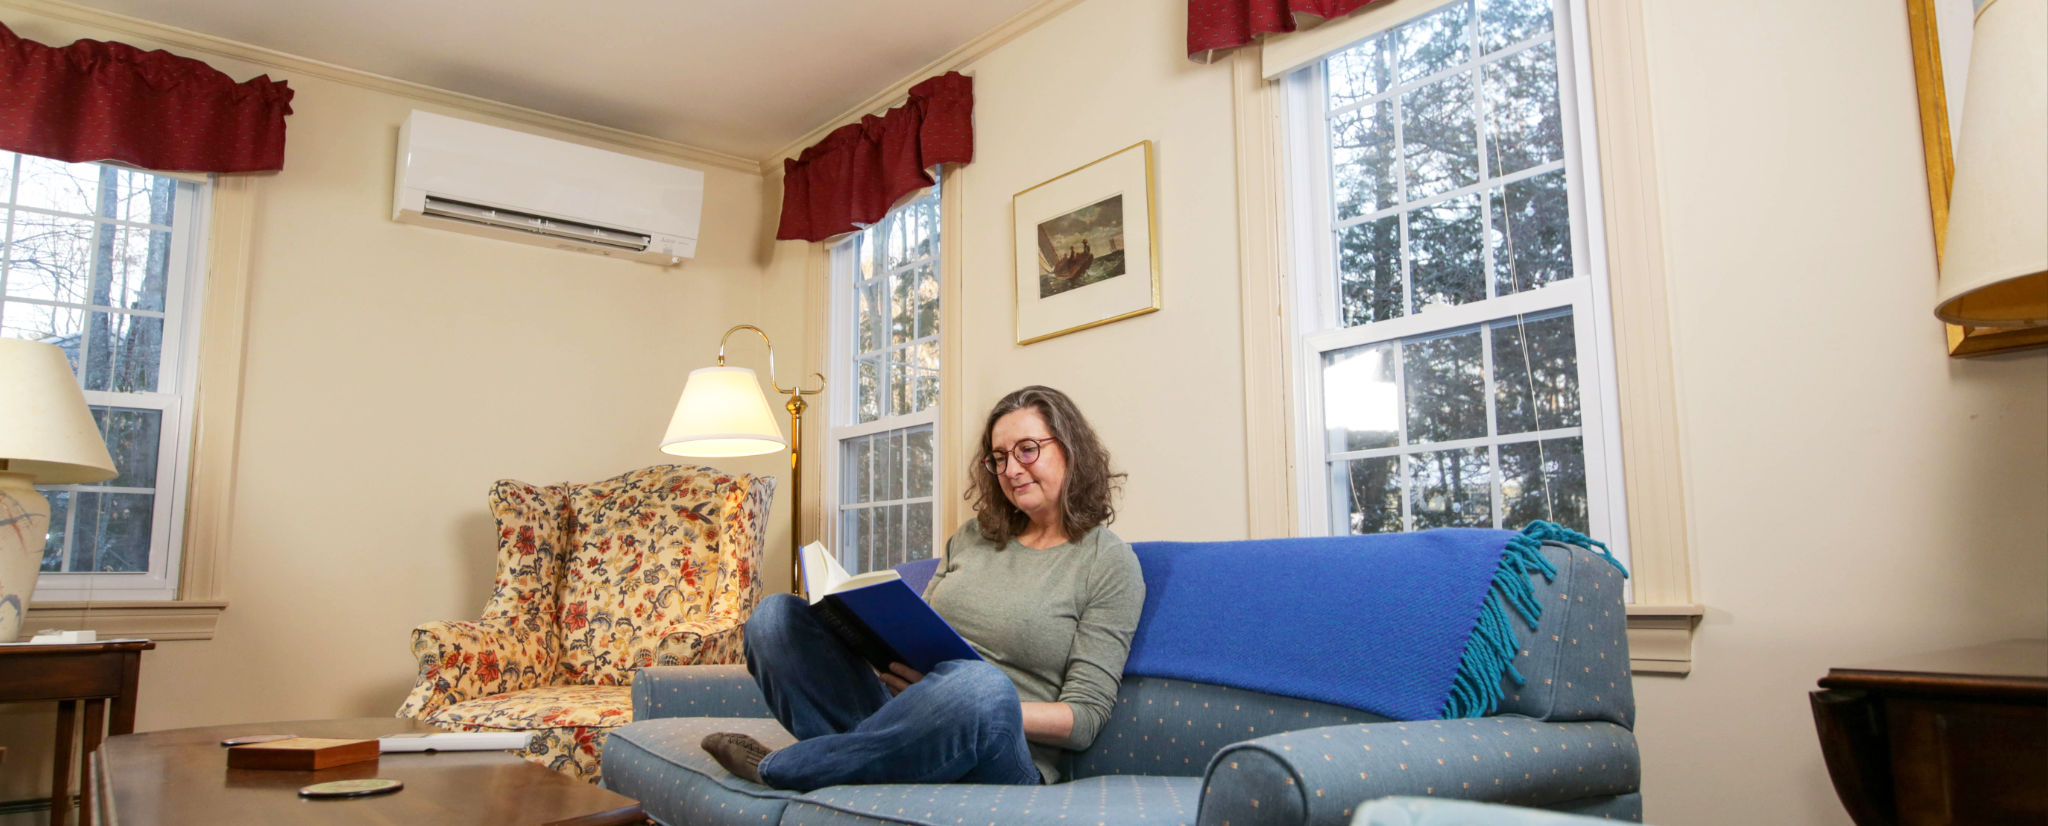 Woman reading in comforatble room with heat pump